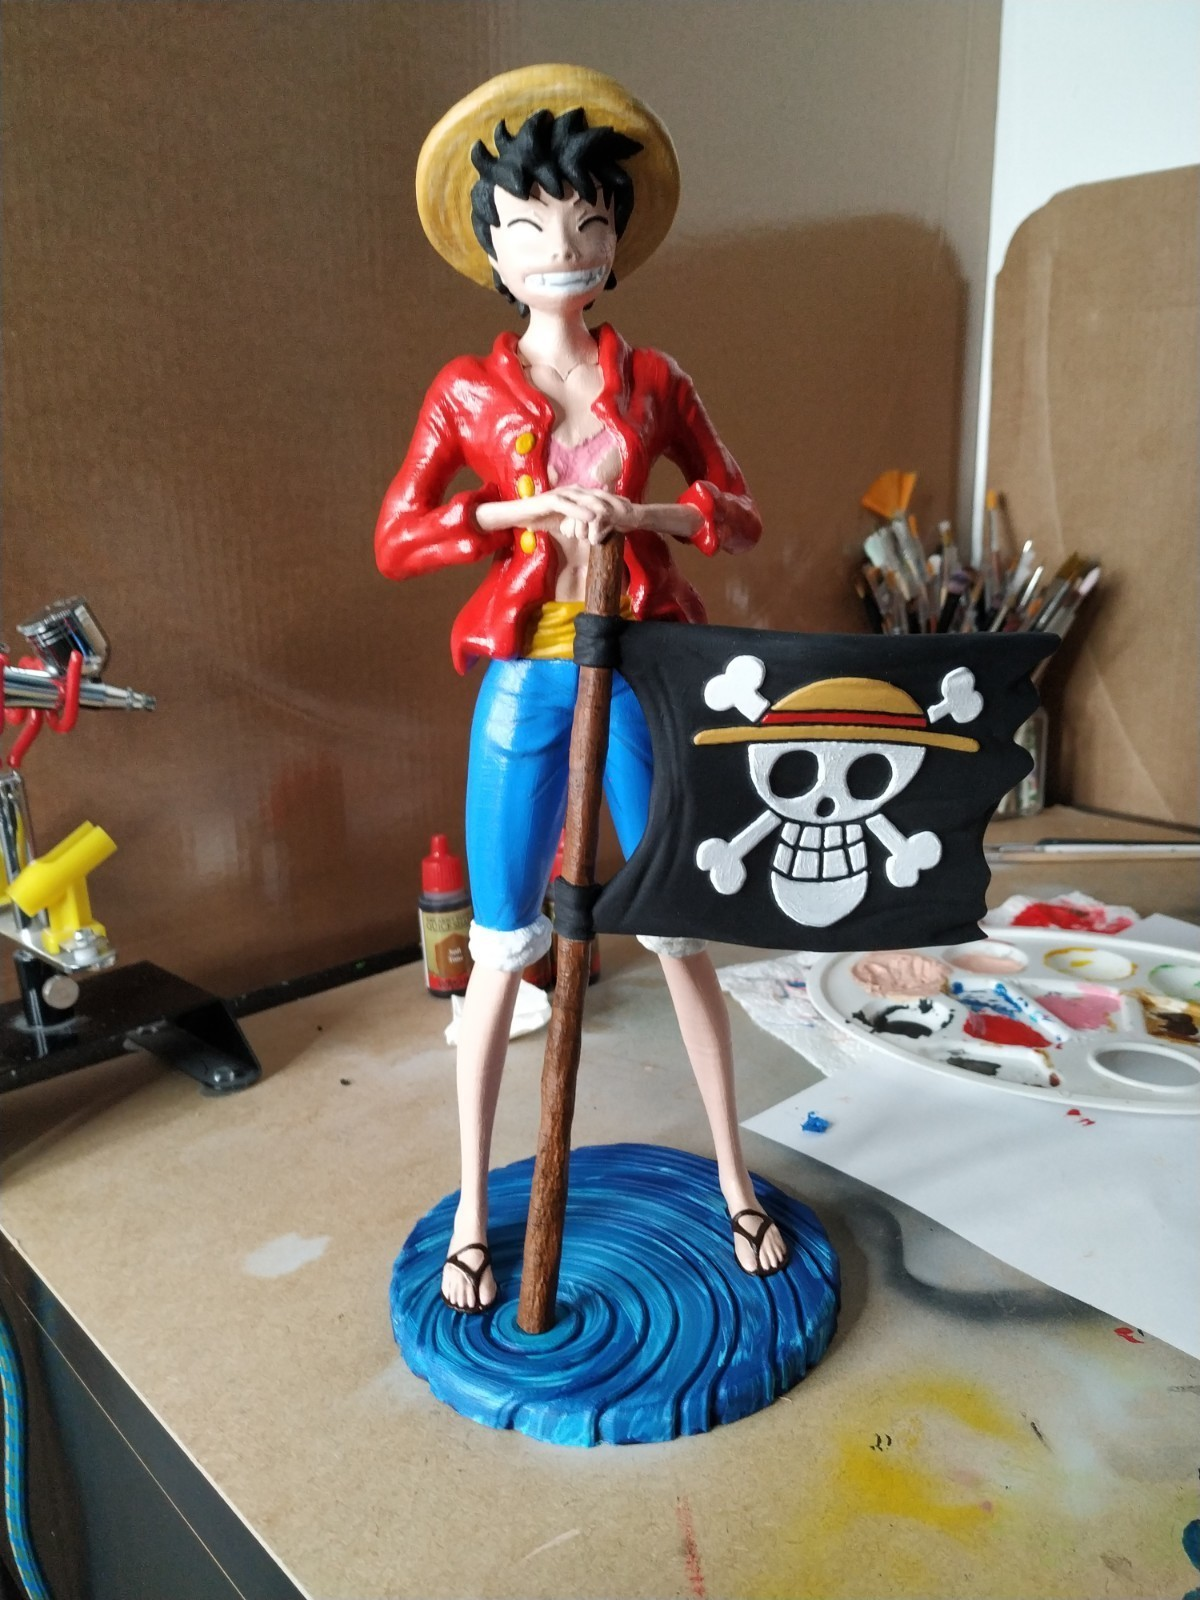 IMG_20190321_235726.jpg Download free STL file Monkey D Luffy • 3D printing object, BODY3D